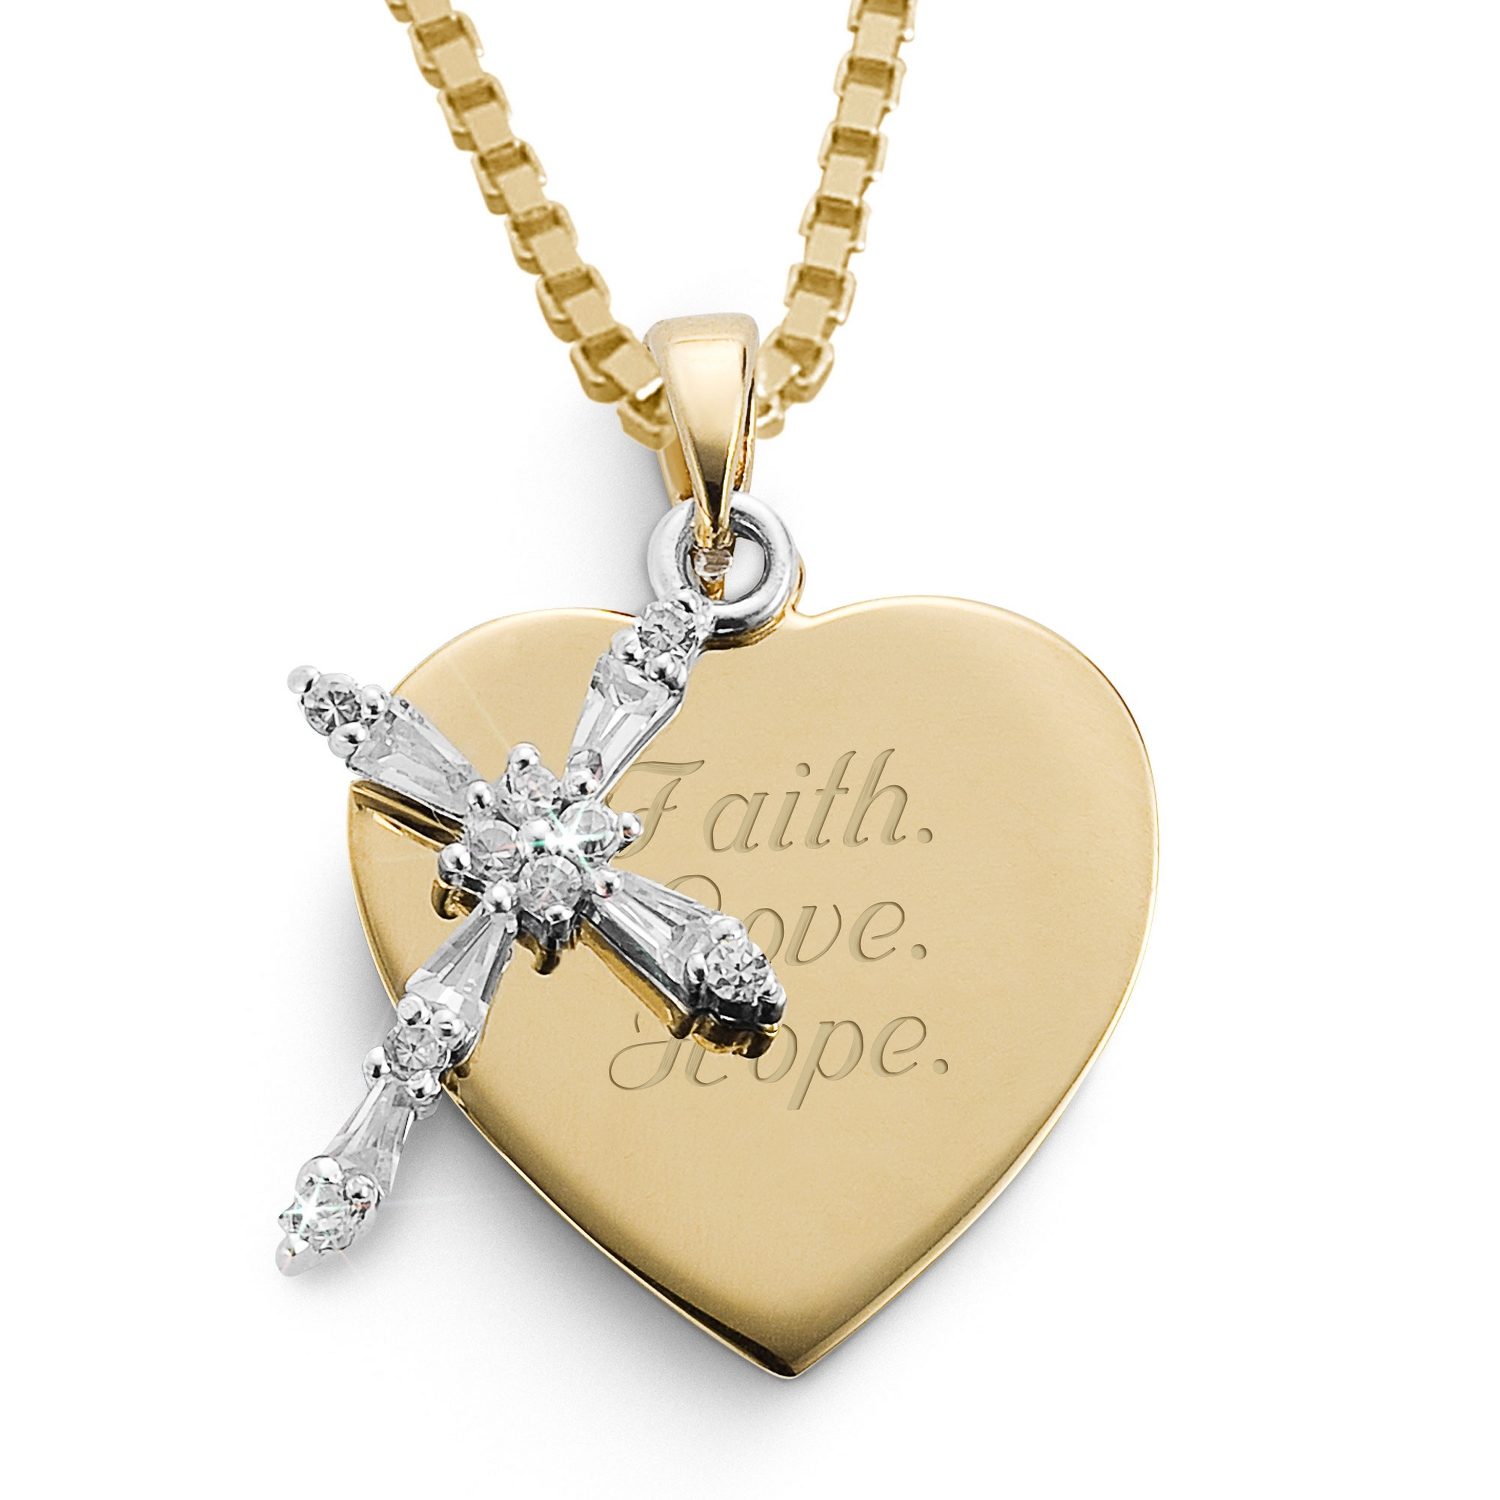 girocollo baptism necklace gold kt stroili intl in oro en